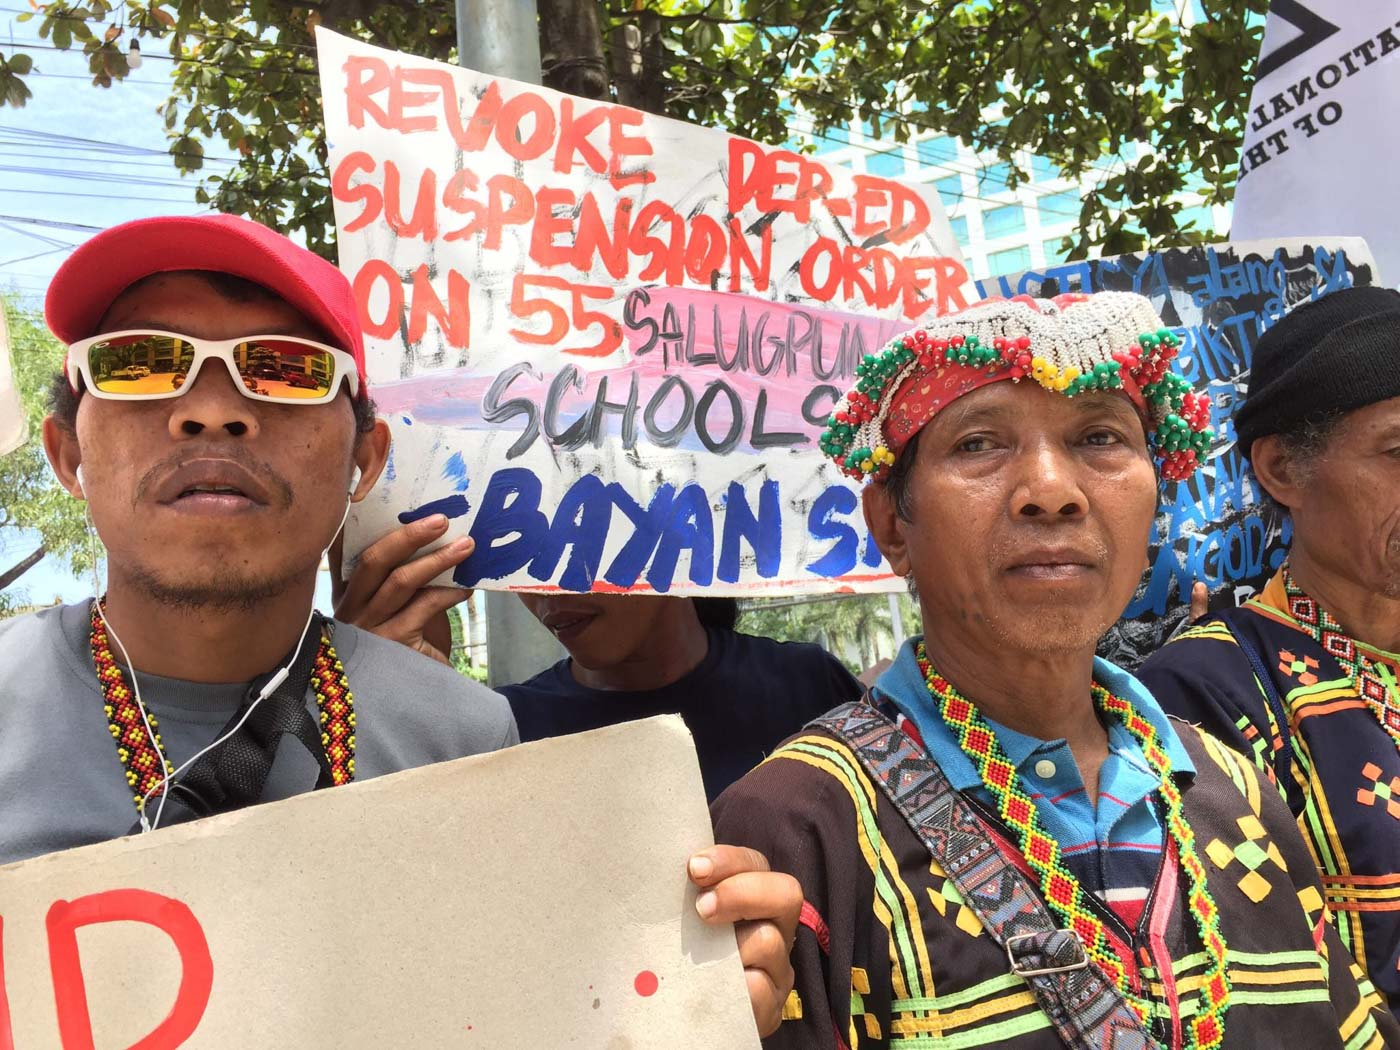 DENOUNCING DEP-ED. On Monday, July 22, Lumad leaders condemn the DepEd order to close 55 Lumad schools in Mindanao. Photo courtesy of Kilab Multimedia